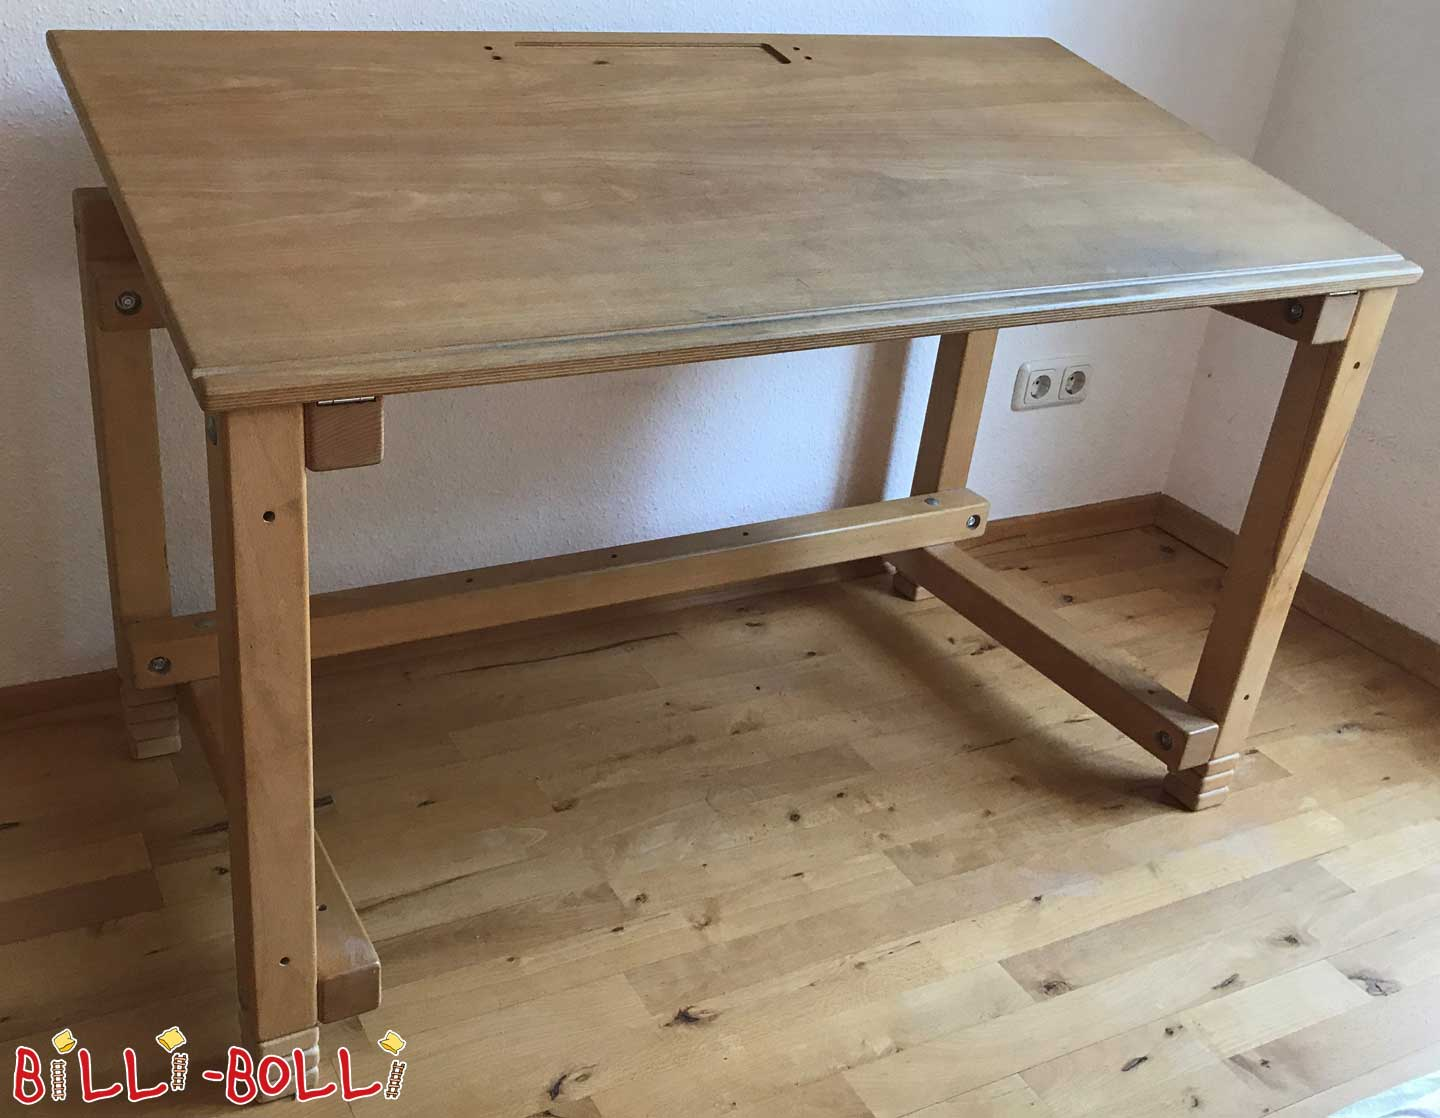 Oiled beech, child's desk, 63 x 123 cm (second hand kids' furniture)